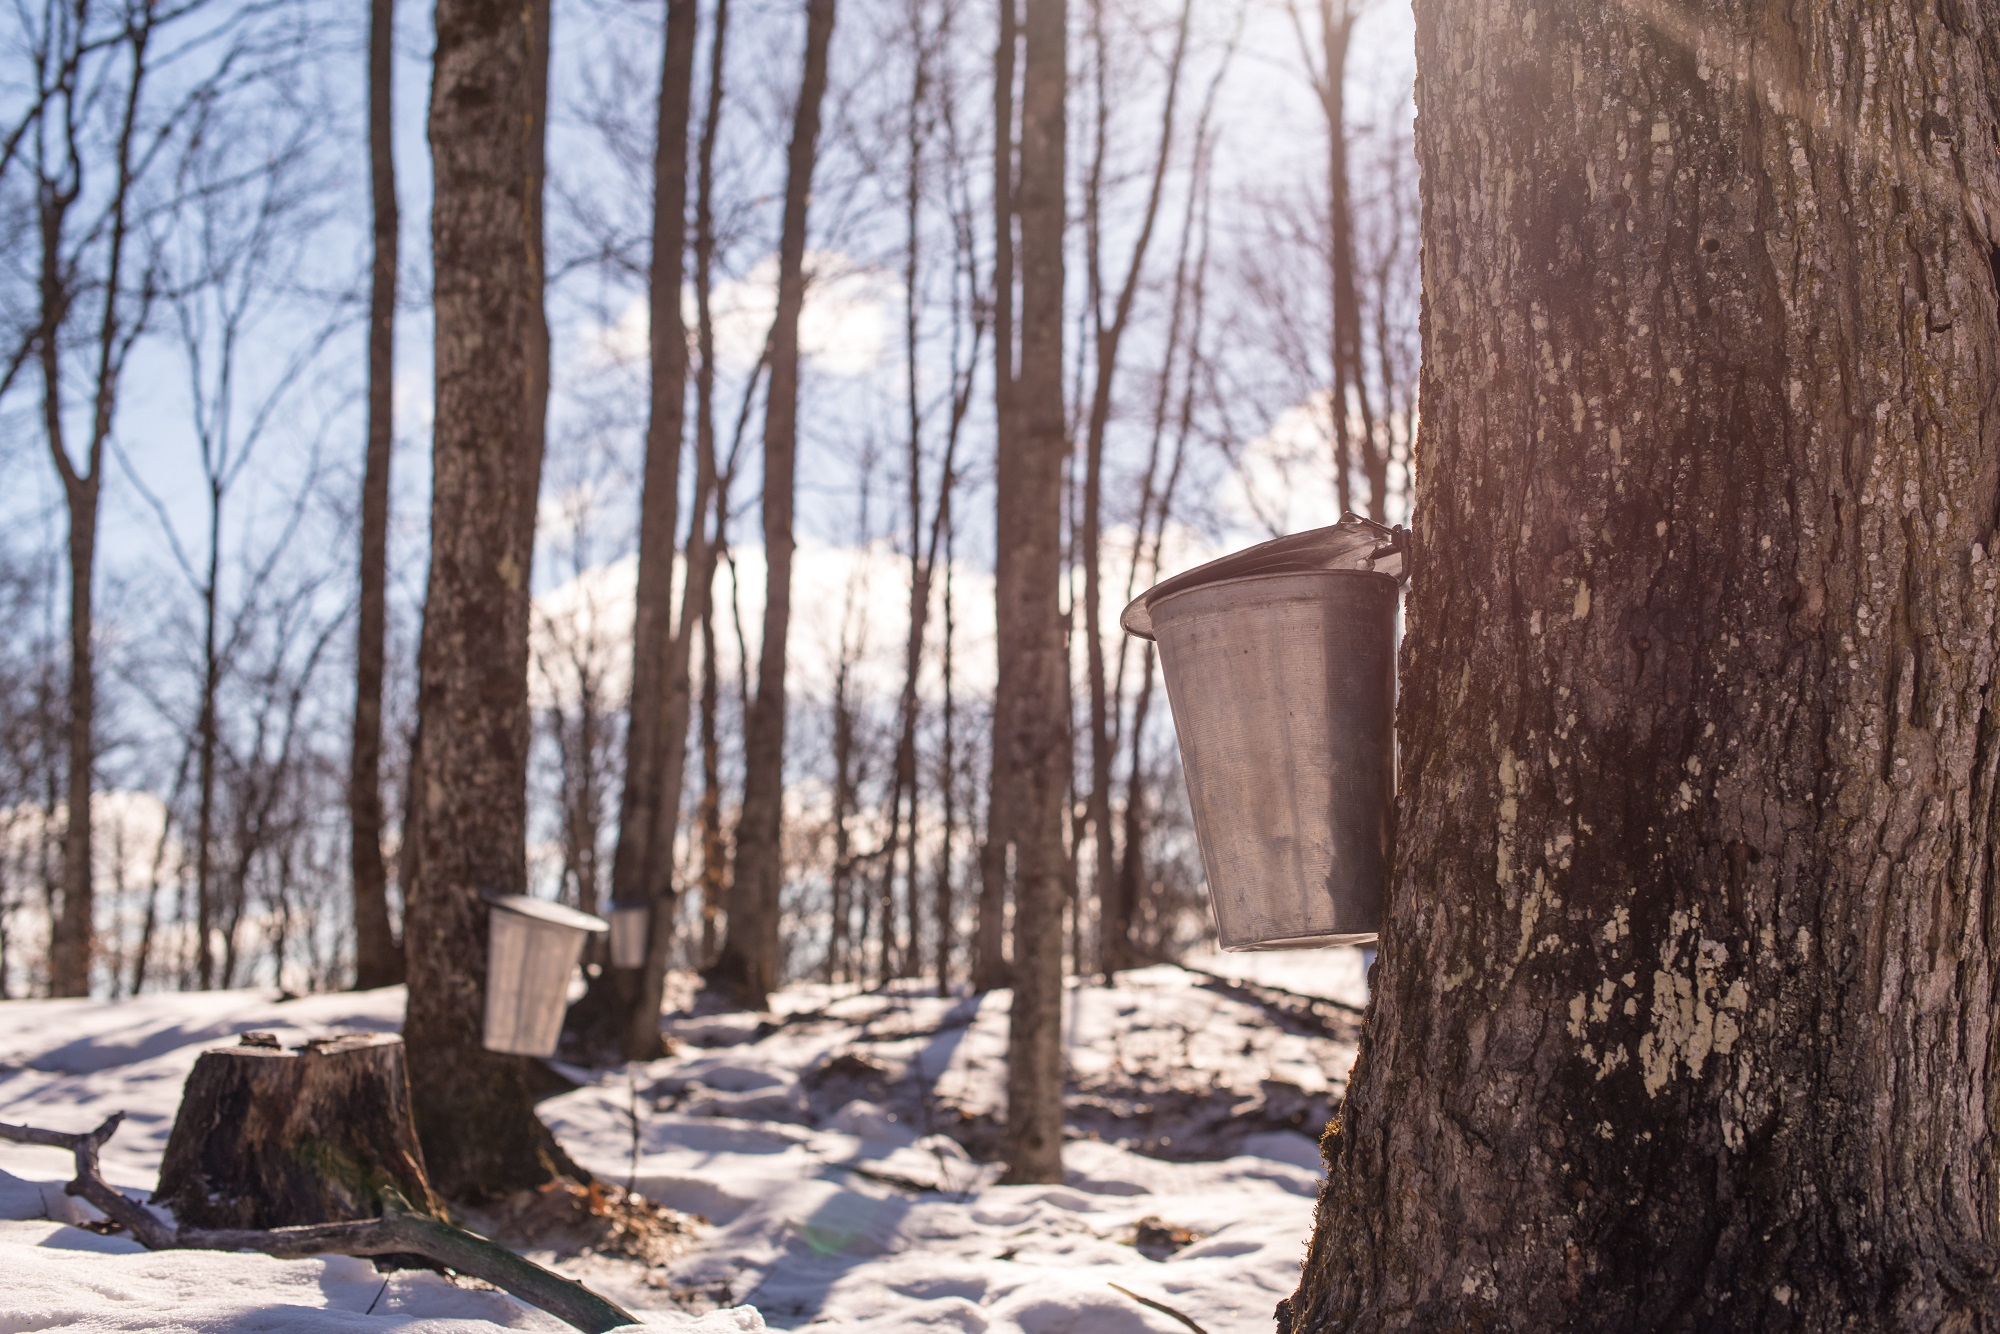 Sap Buckets in the Forest